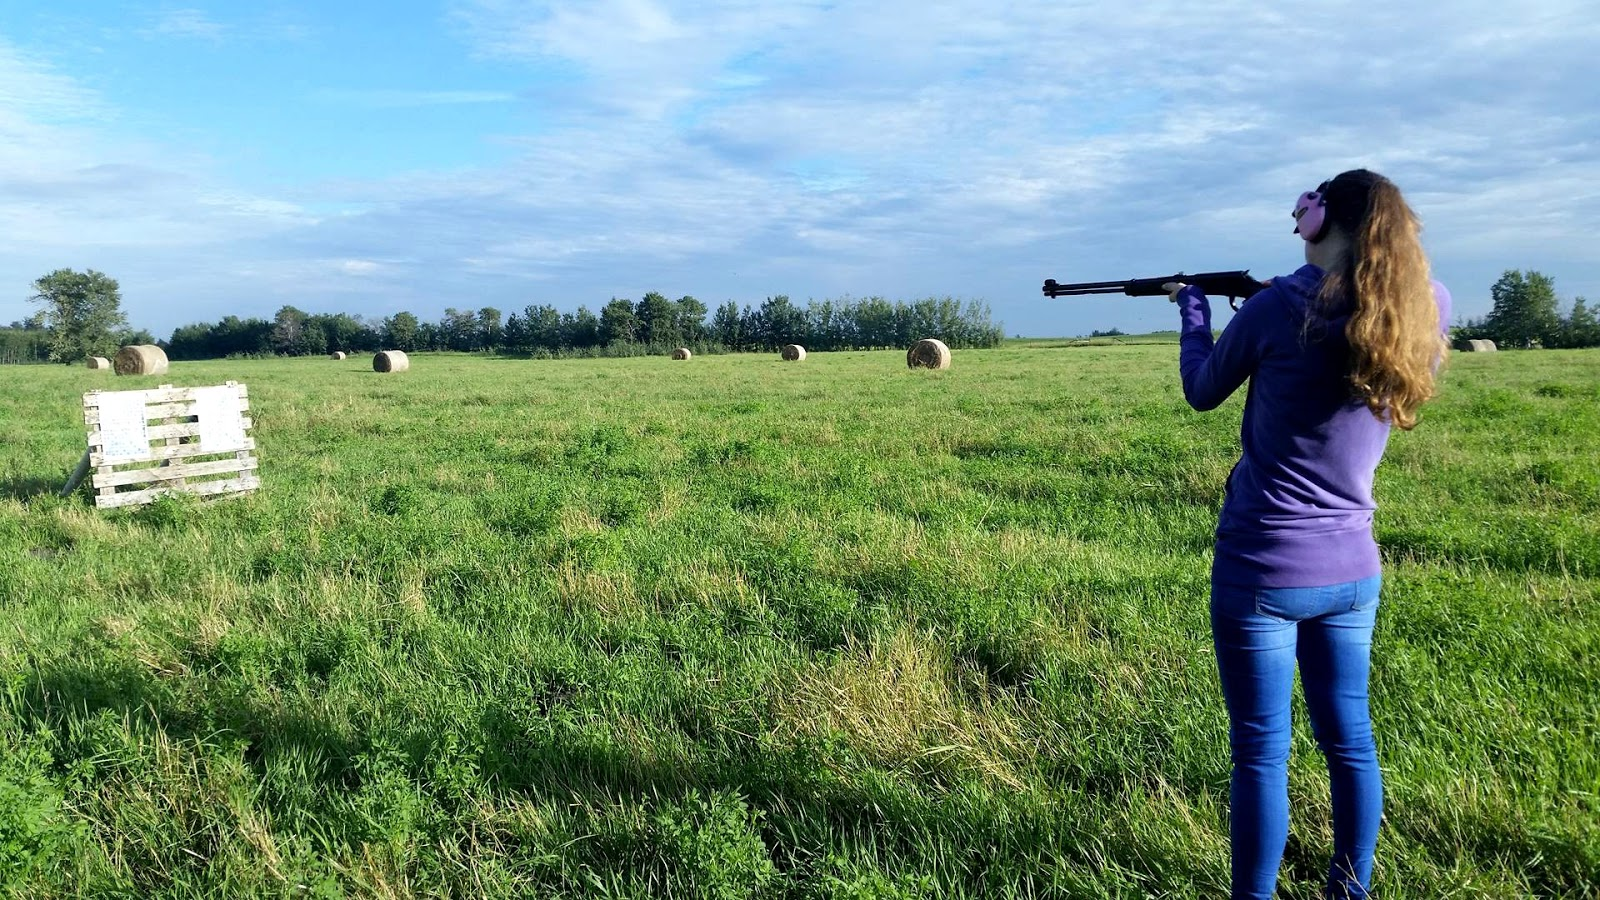 Farm Land near Edmonton Alberta Rifle Target Shooting